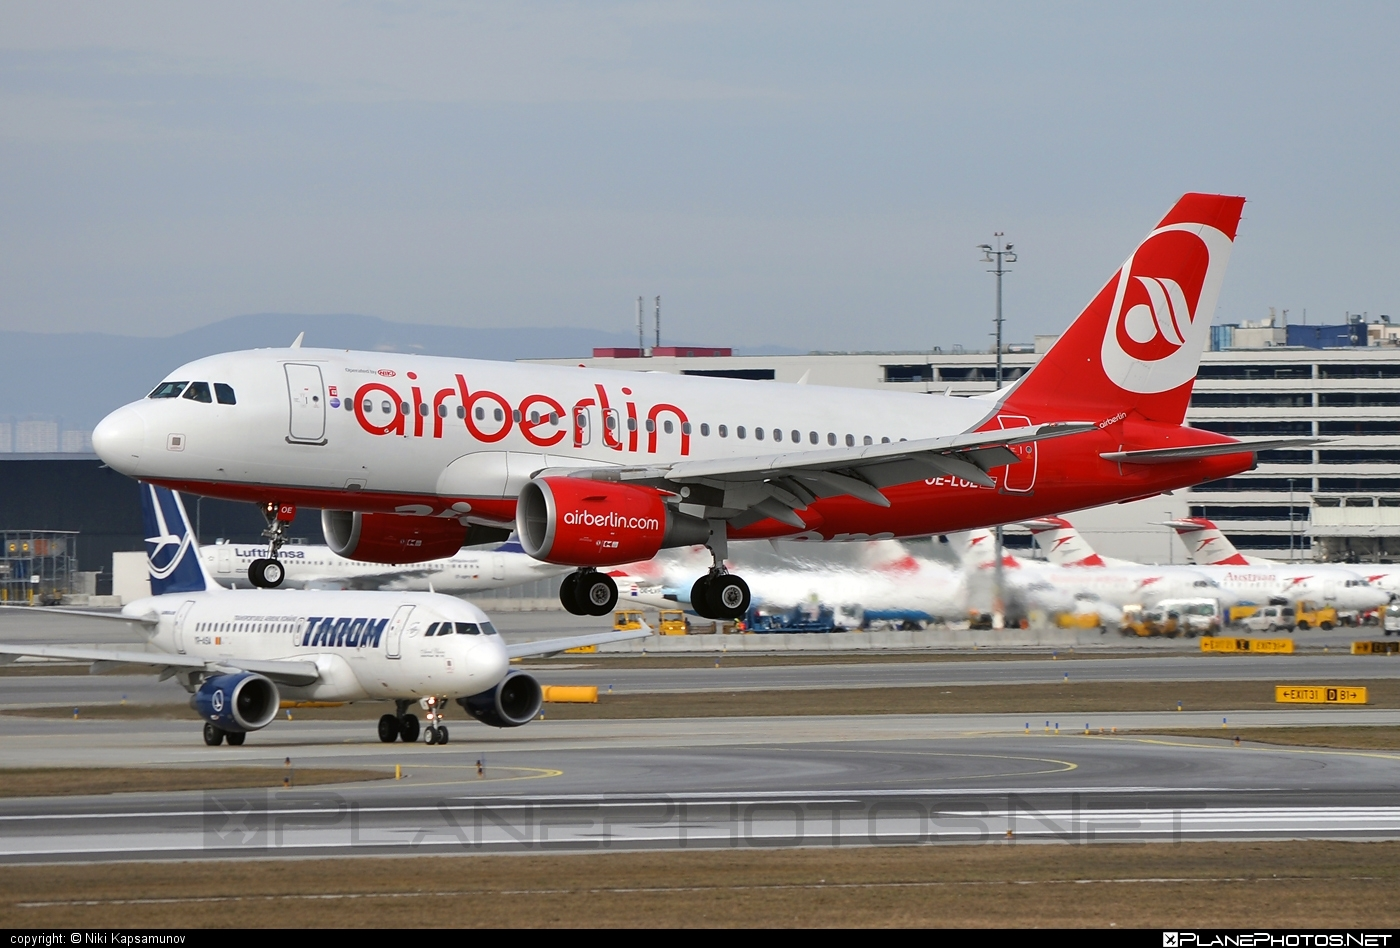 Airbus A319-112 - OE-LOE operated by Air Berlin #a319 #a320family #airberlin #airbus #airbus319